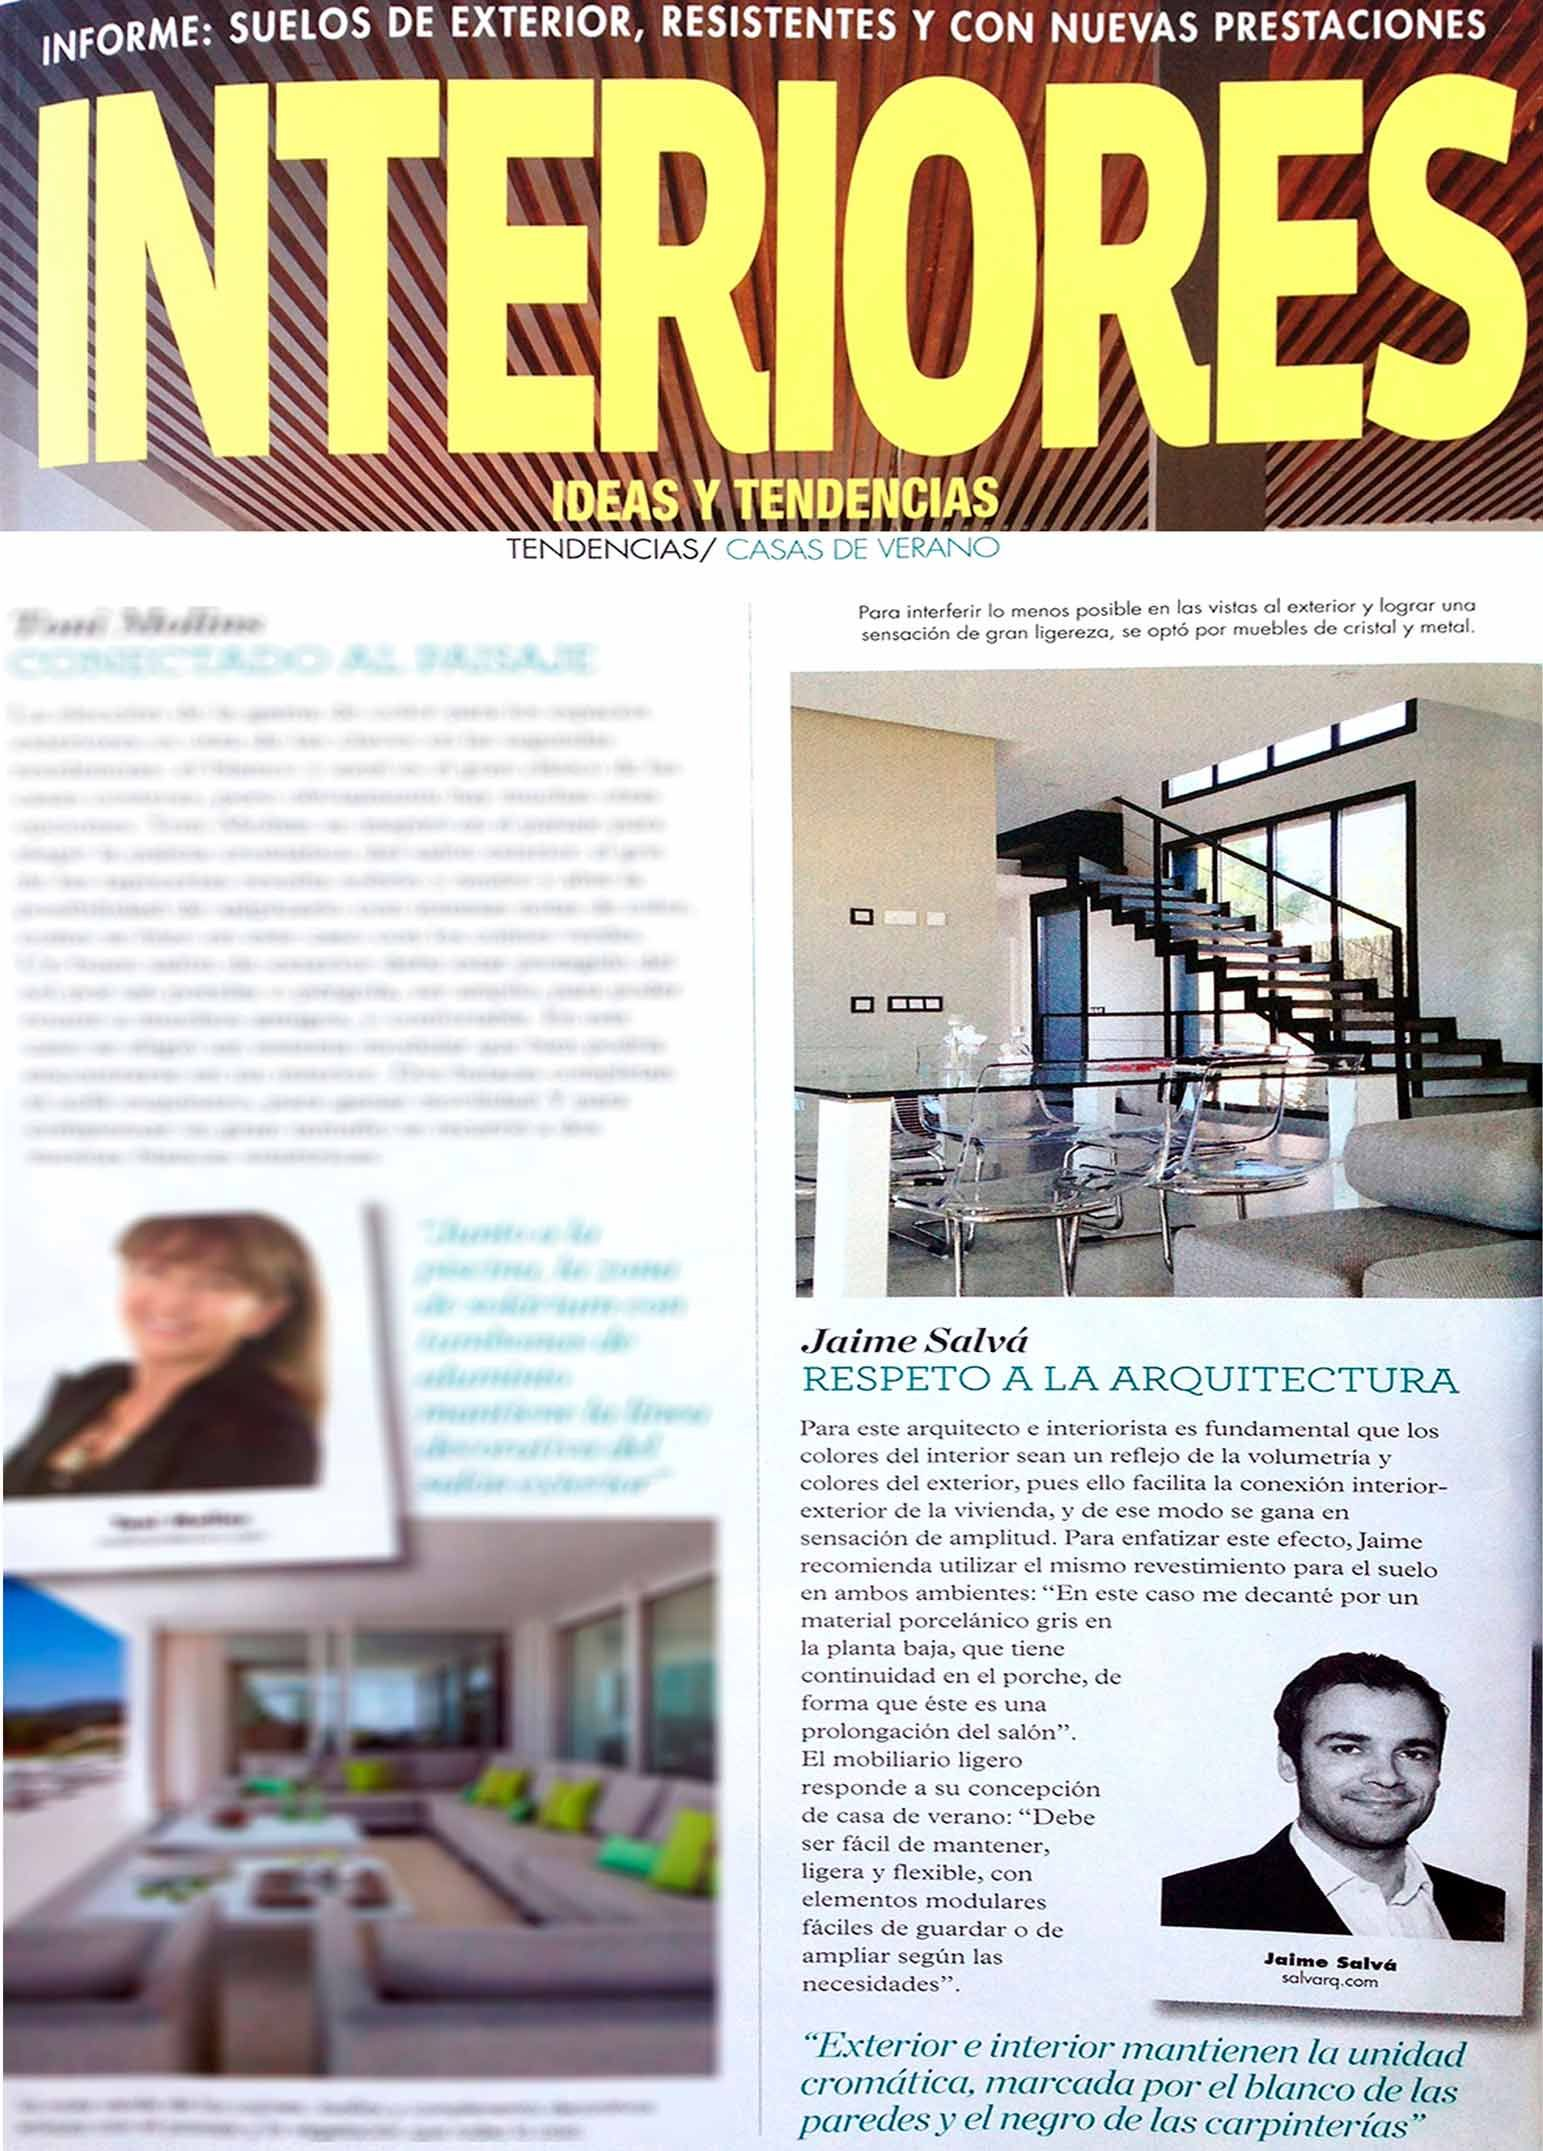 Incre ble revista de interiores de casas bandera ideas for Revistas decoracion interiores